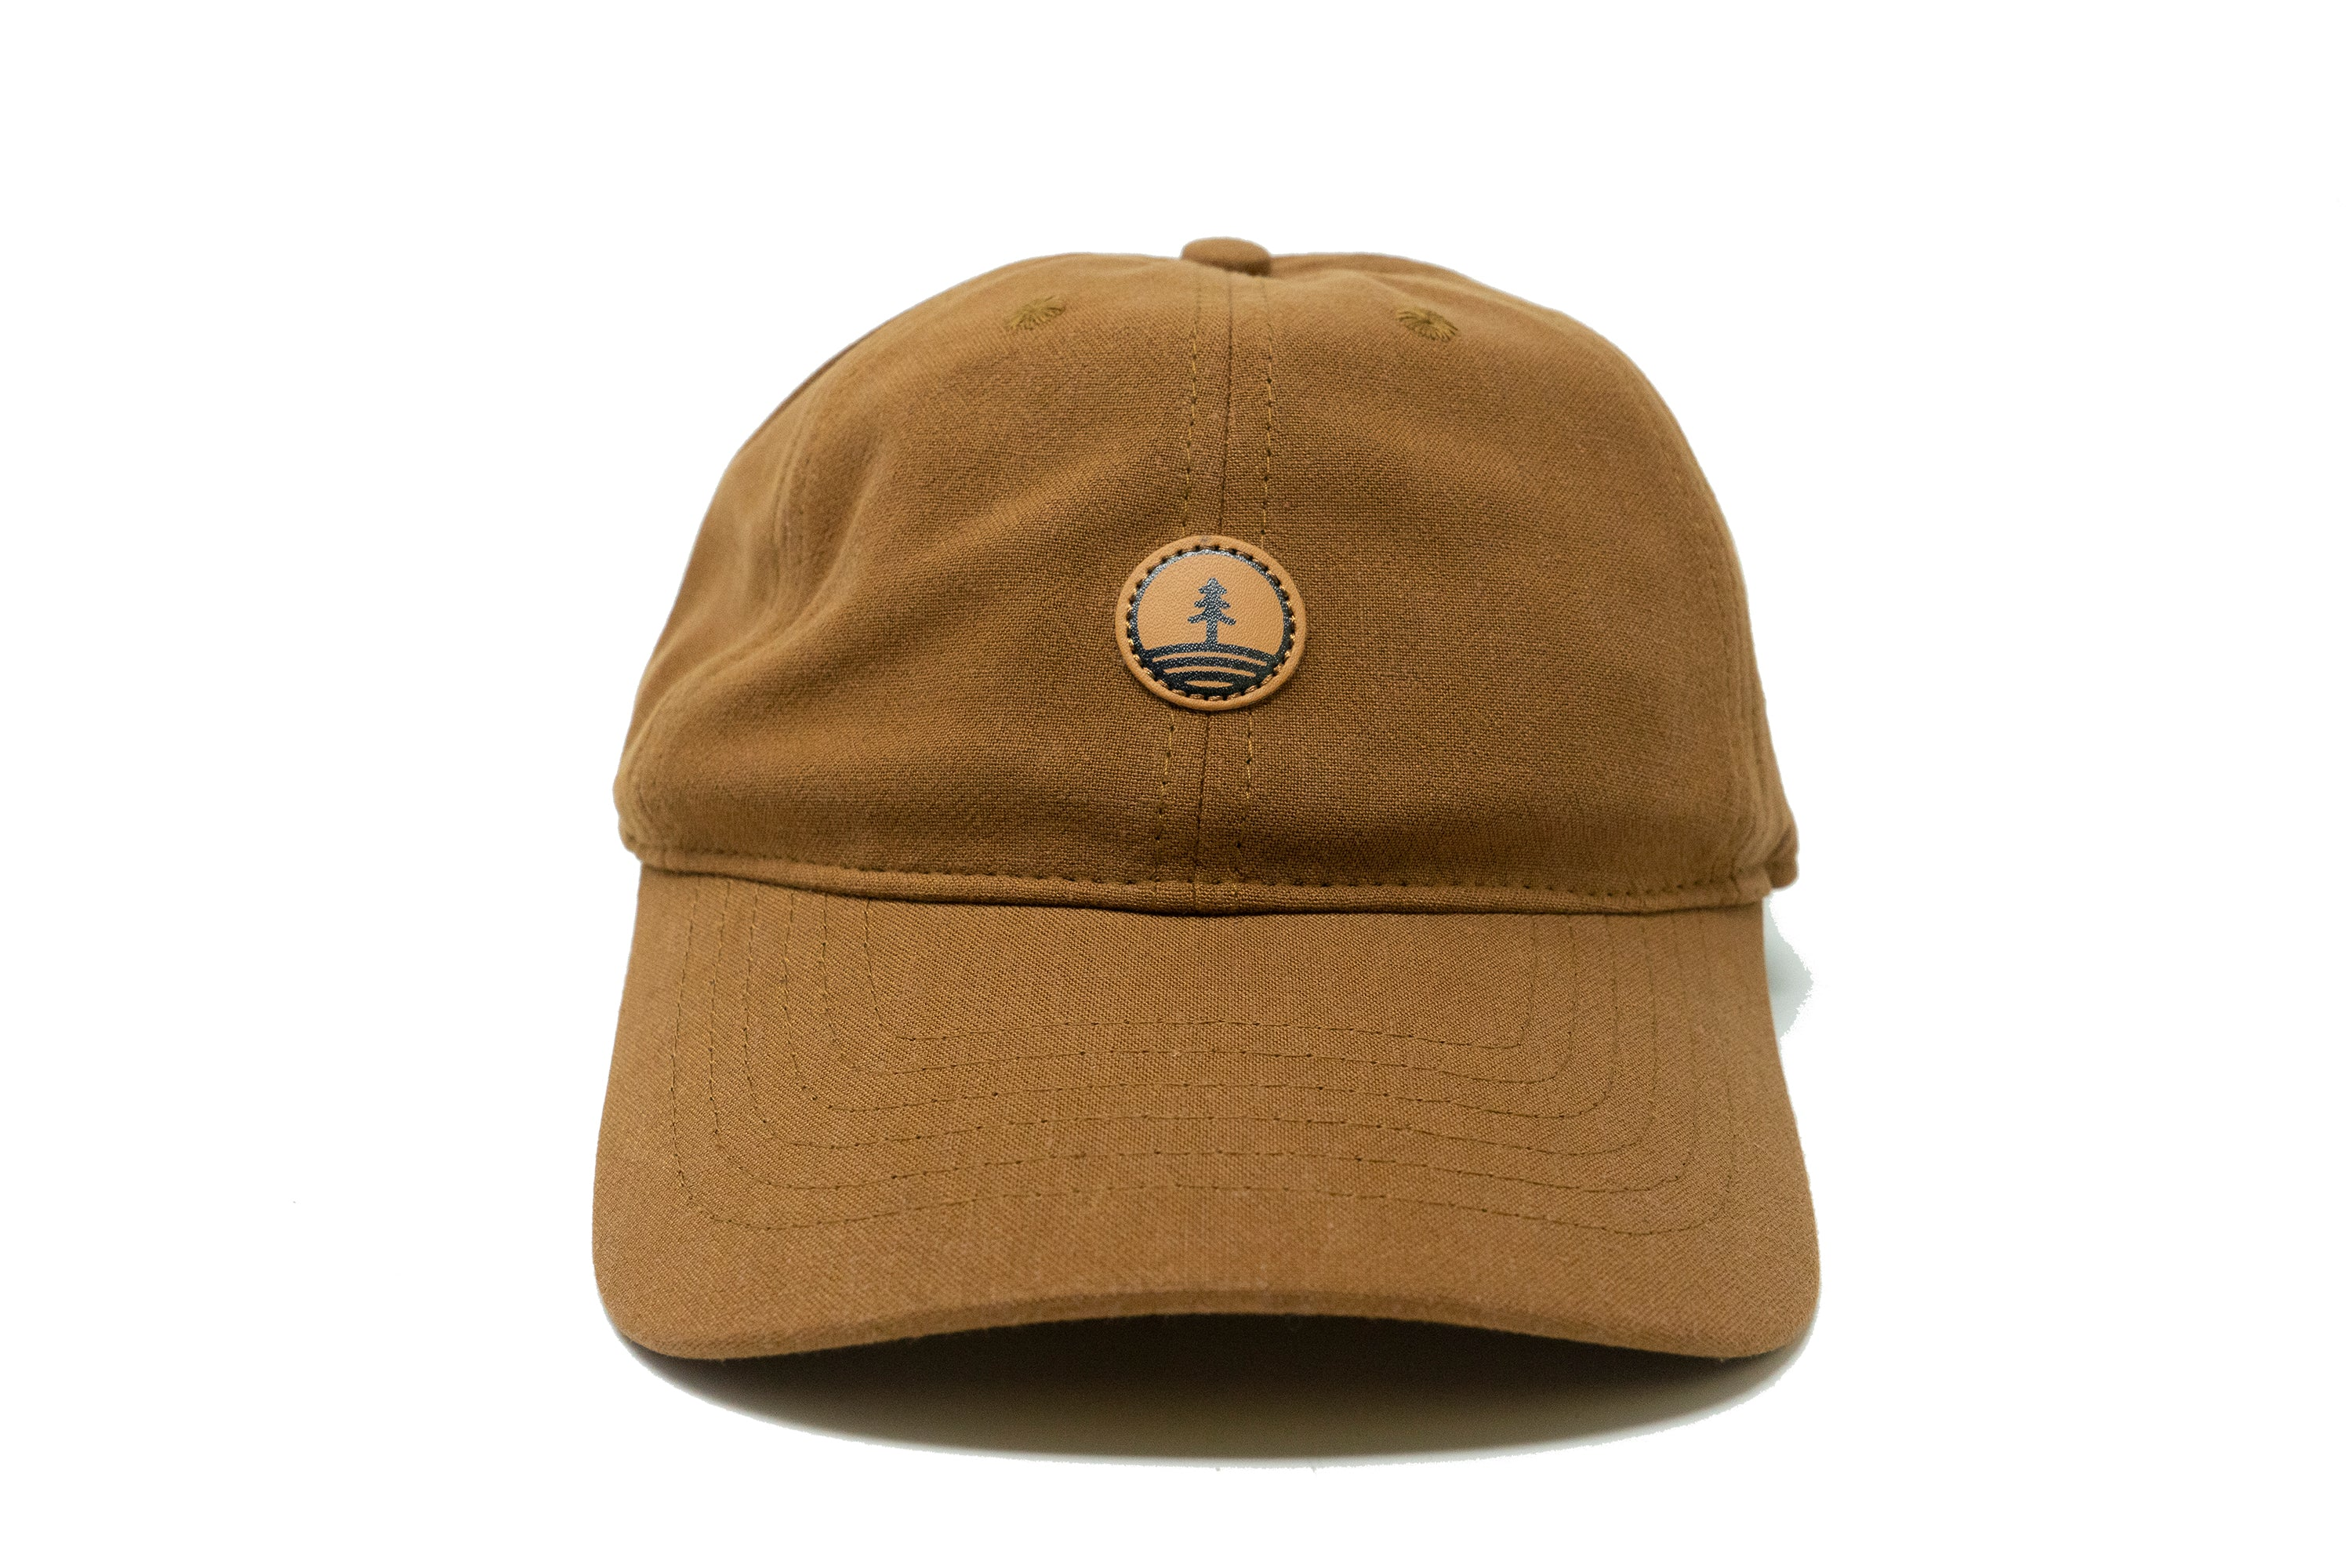 The Brown Andre Hat